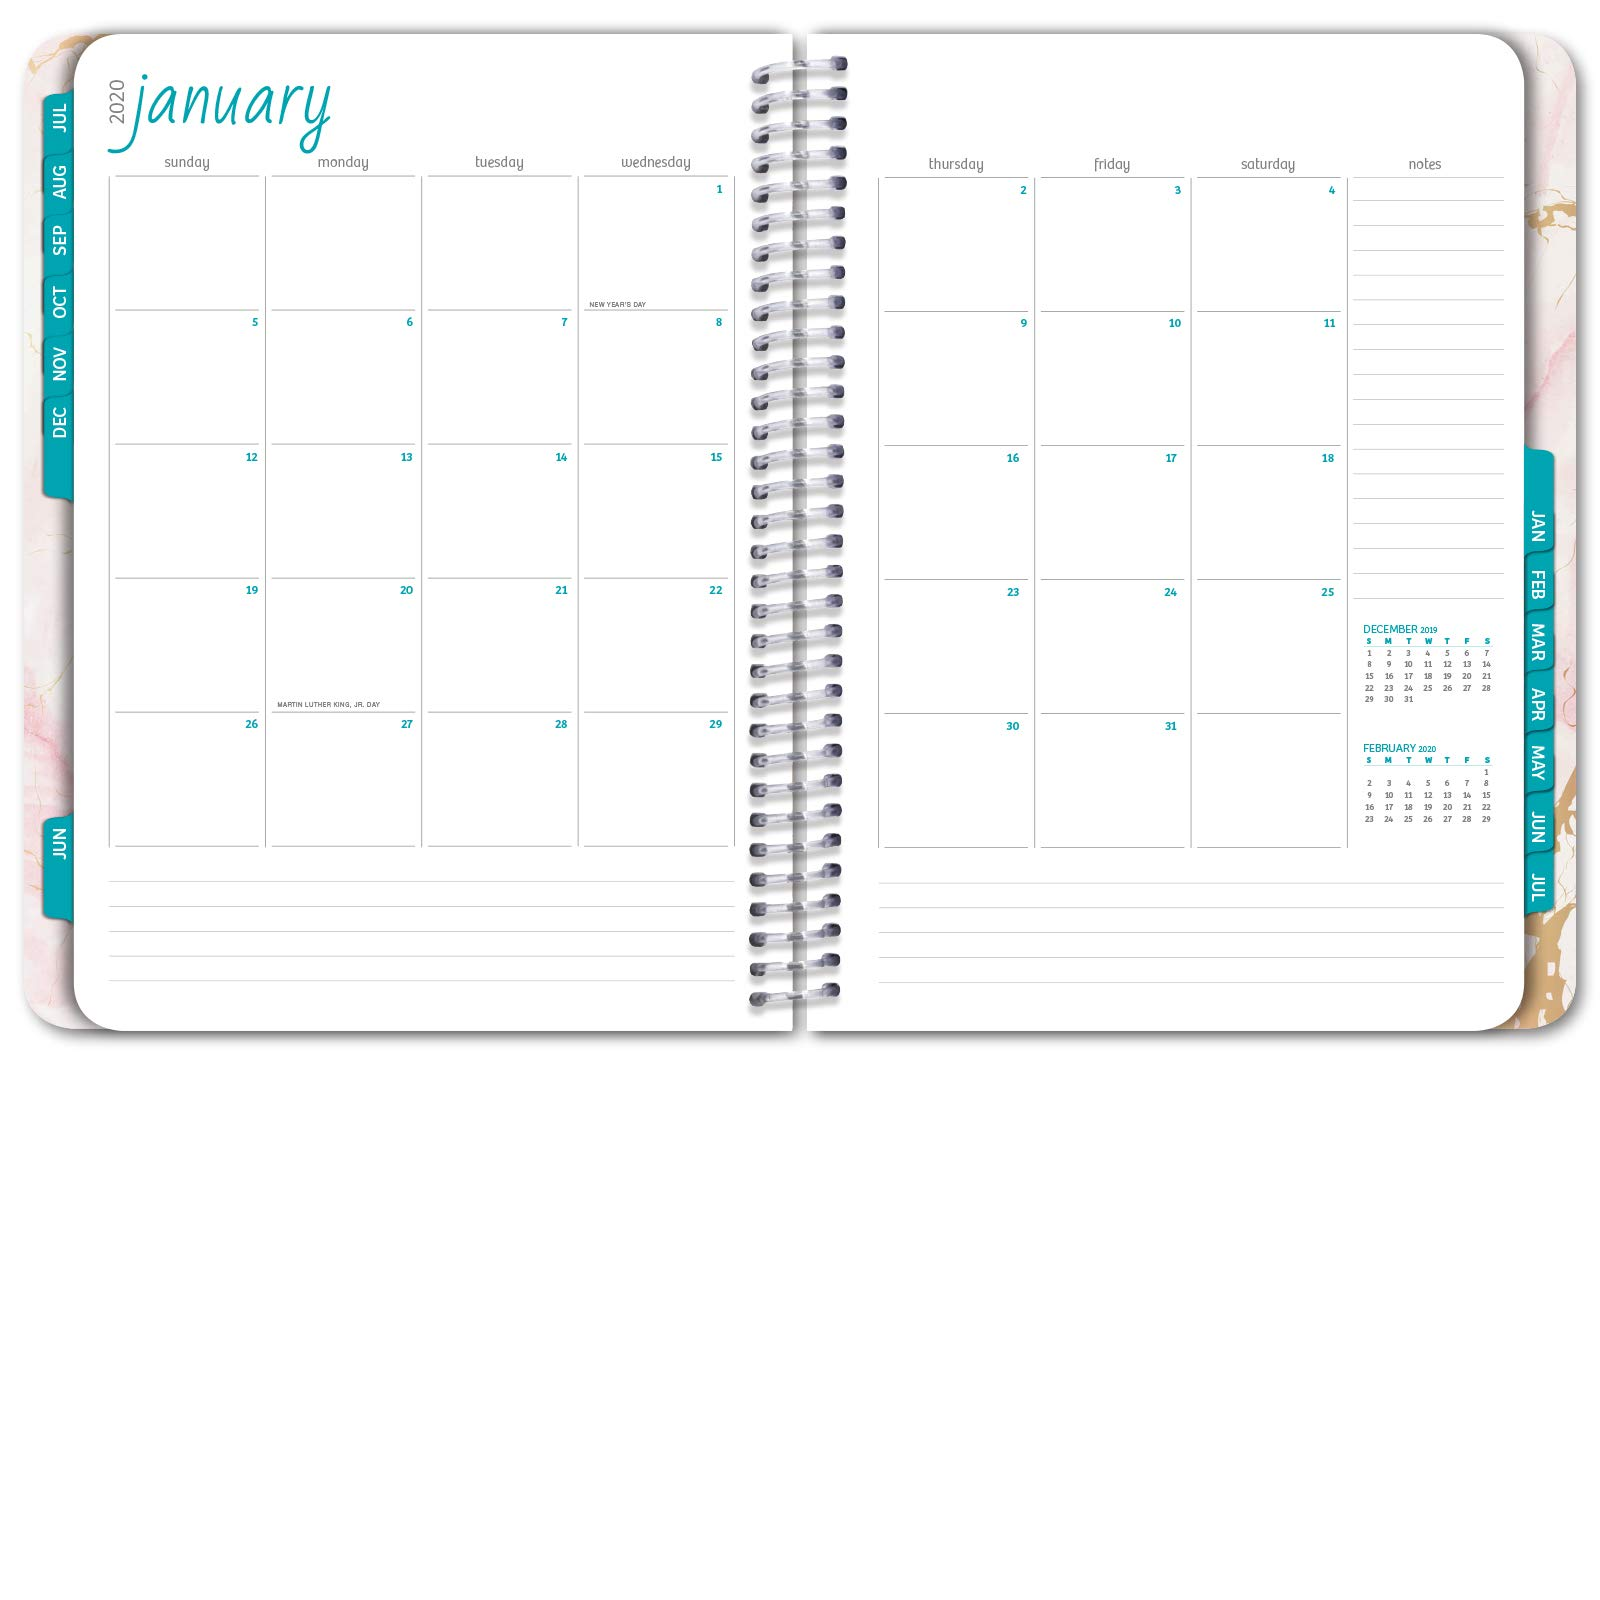 HARDCOVER Academic Year 2019-2020 Planner: (June 2019 Through July 2020) 8.5''x11'' Daily Weekly Monthly Planner Yearly Agenda. Bonus Bookmark, Pocket Folder and Sticky Note Set (Pink Marble) by Global Printed Products (Image #5)